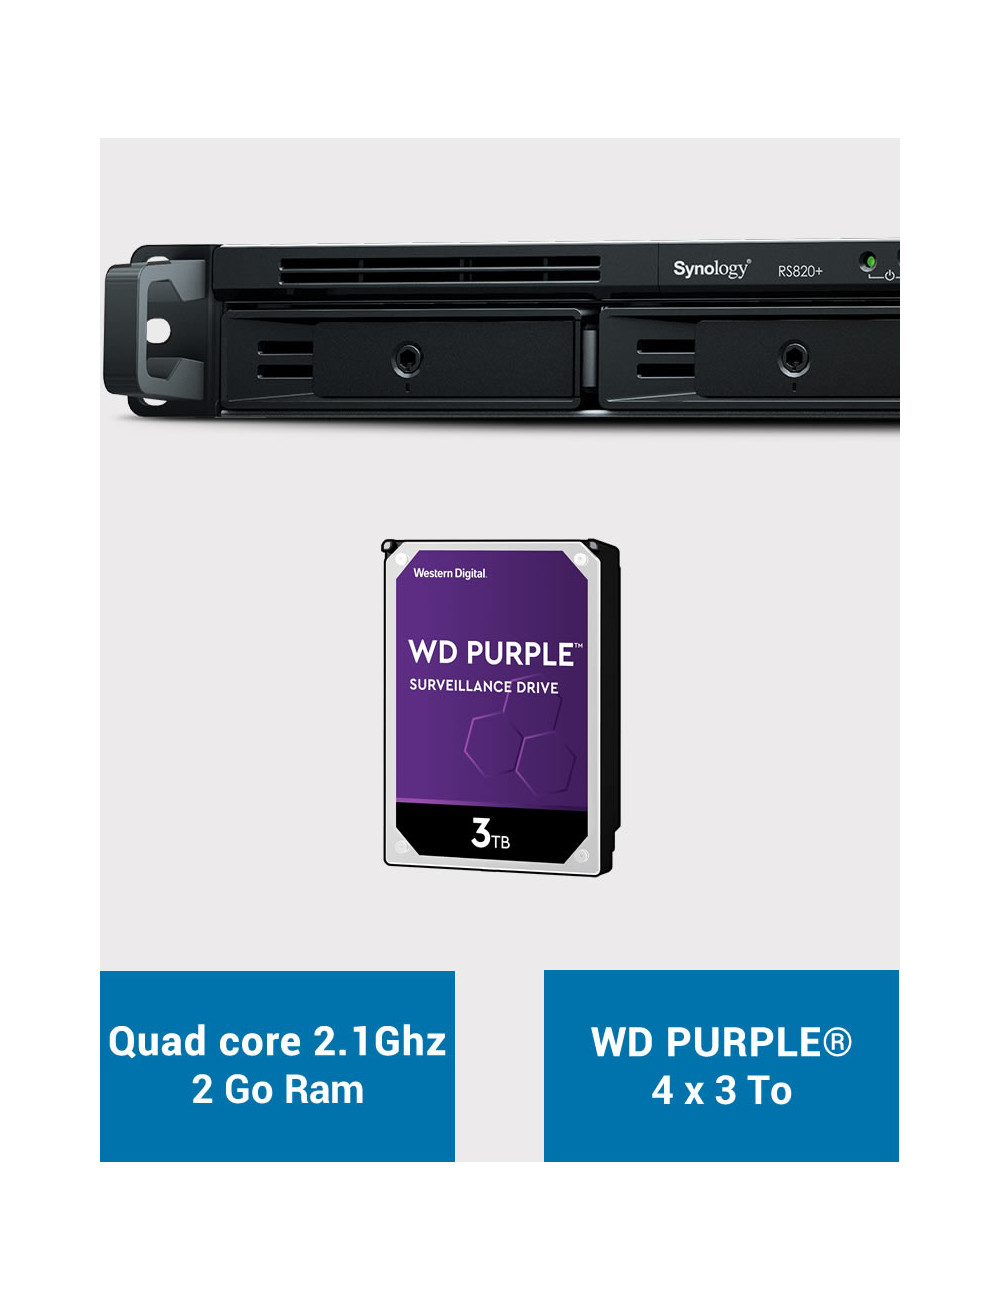 Synology RS820+ 2GB Serveur NAS WD PURPLE 12To (4x3To)